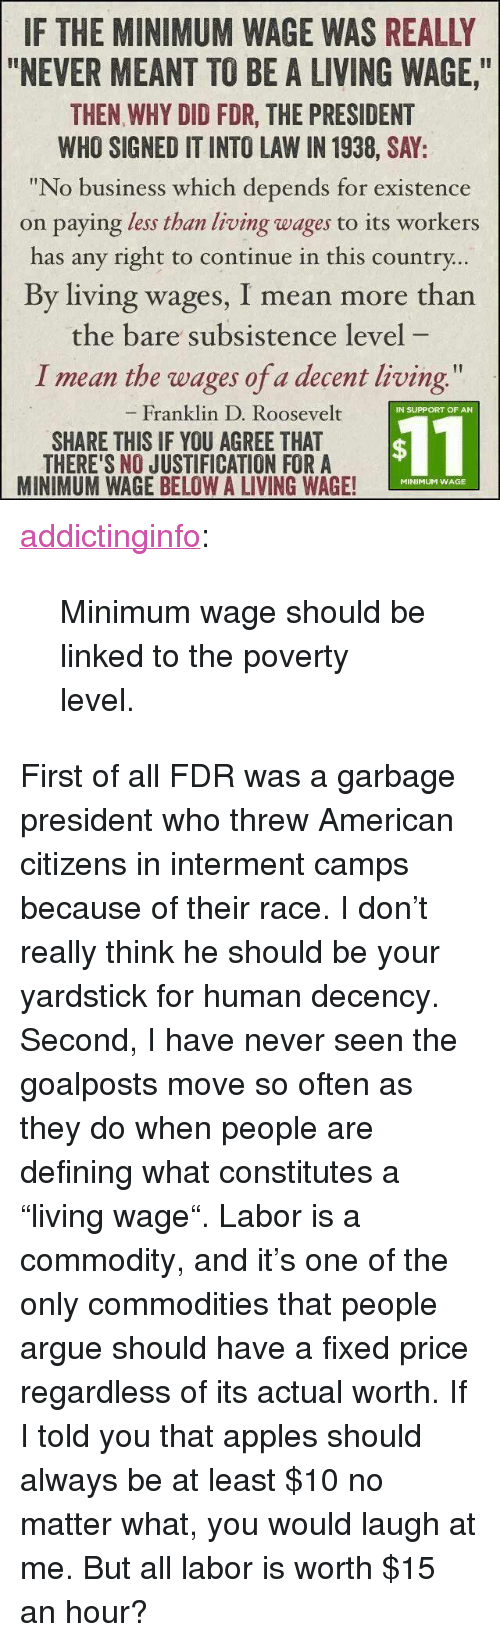 """Defining: IF THE MINIMUM WAGE WAS REALLY  """"NEVER MEANT TO BE A LIVING WAGE,  THEN WHY DID FDR, THE PRESIDENT  WHO SIGNED IT INTO LAW IN 1938, SAY:  """"No business which depends for existence  on paying less than living wages to its workers  has any right to continue in this country  By living wages, I mean more than  the bare subsistence level  I mean the wages of a decent living  Franklin D. Roosevelt  IN SUPPORT OF AN  SHARE THIS IF YOU AGREE THAT  THERE'S NO JUSTIFICATION FORA  MINIMUM WAGE BELOW A LIVING WAGE!  $11  MINIMUM WAGE <p><a href=""""http://addictinginfo.tumblr.com/post/83841892544/minimum-wage-should-be-linked-to-the-poverty"""" class=""""tumblr_blog"""">addictinginfo</a>:</p>  <blockquote><p>Minimum wage should be linked to the poverty level.</p></blockquote>  <p>First of all FDR was a garbage president who threw American citizens in interment camps because of their race. I don't really think he should be your yardstick for human decency.</p><p>Second, I have never seen the goalposts move so often as they do when people are defining what constitutes a """"living wage"""". Labor is a commodity, and it's one of the only commodities that people argue should have a fixed price regardless of its actual worth. If I told you that apples should always be at least $10 no matter what, you would laugh at me. But all labor is worth $15 an hour?</p>"""